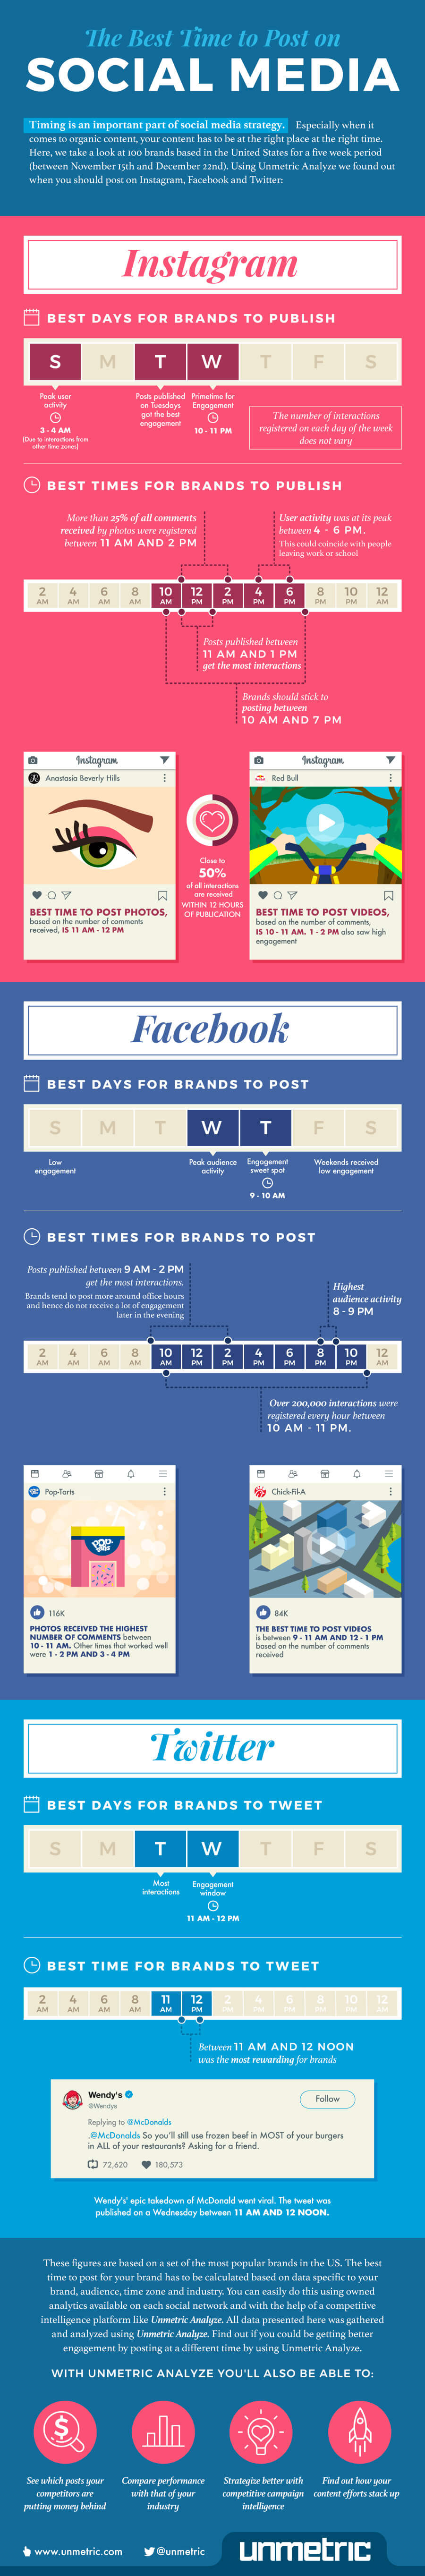 How to Uncover the Best Time to Post on Social Media